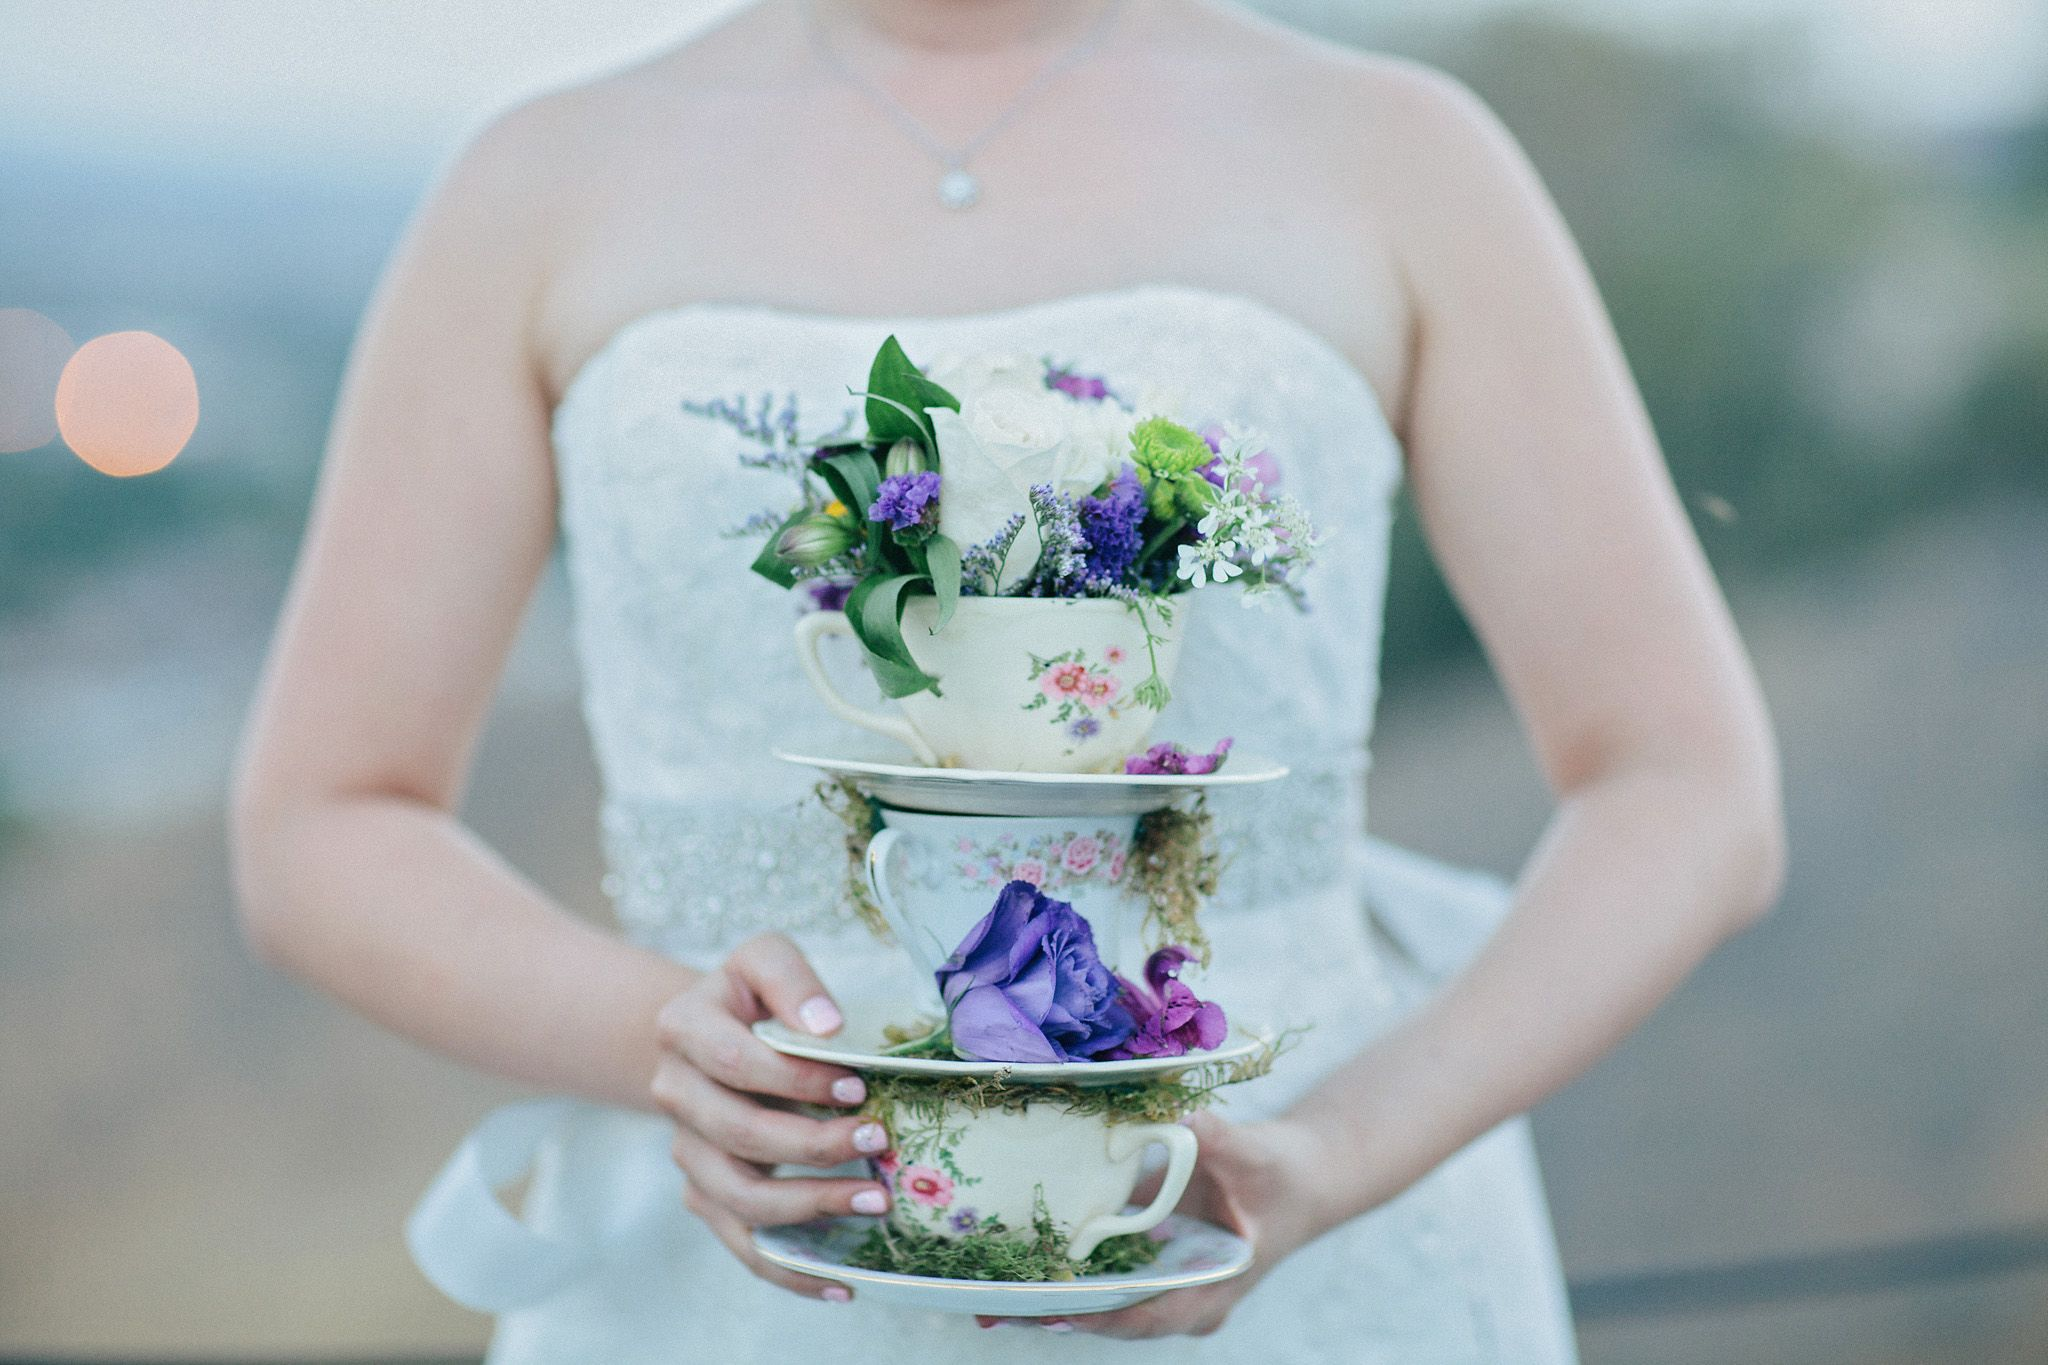 Enjoy A Cup Of Tea With Disneys Alice In Wonderland Inspired Bridal